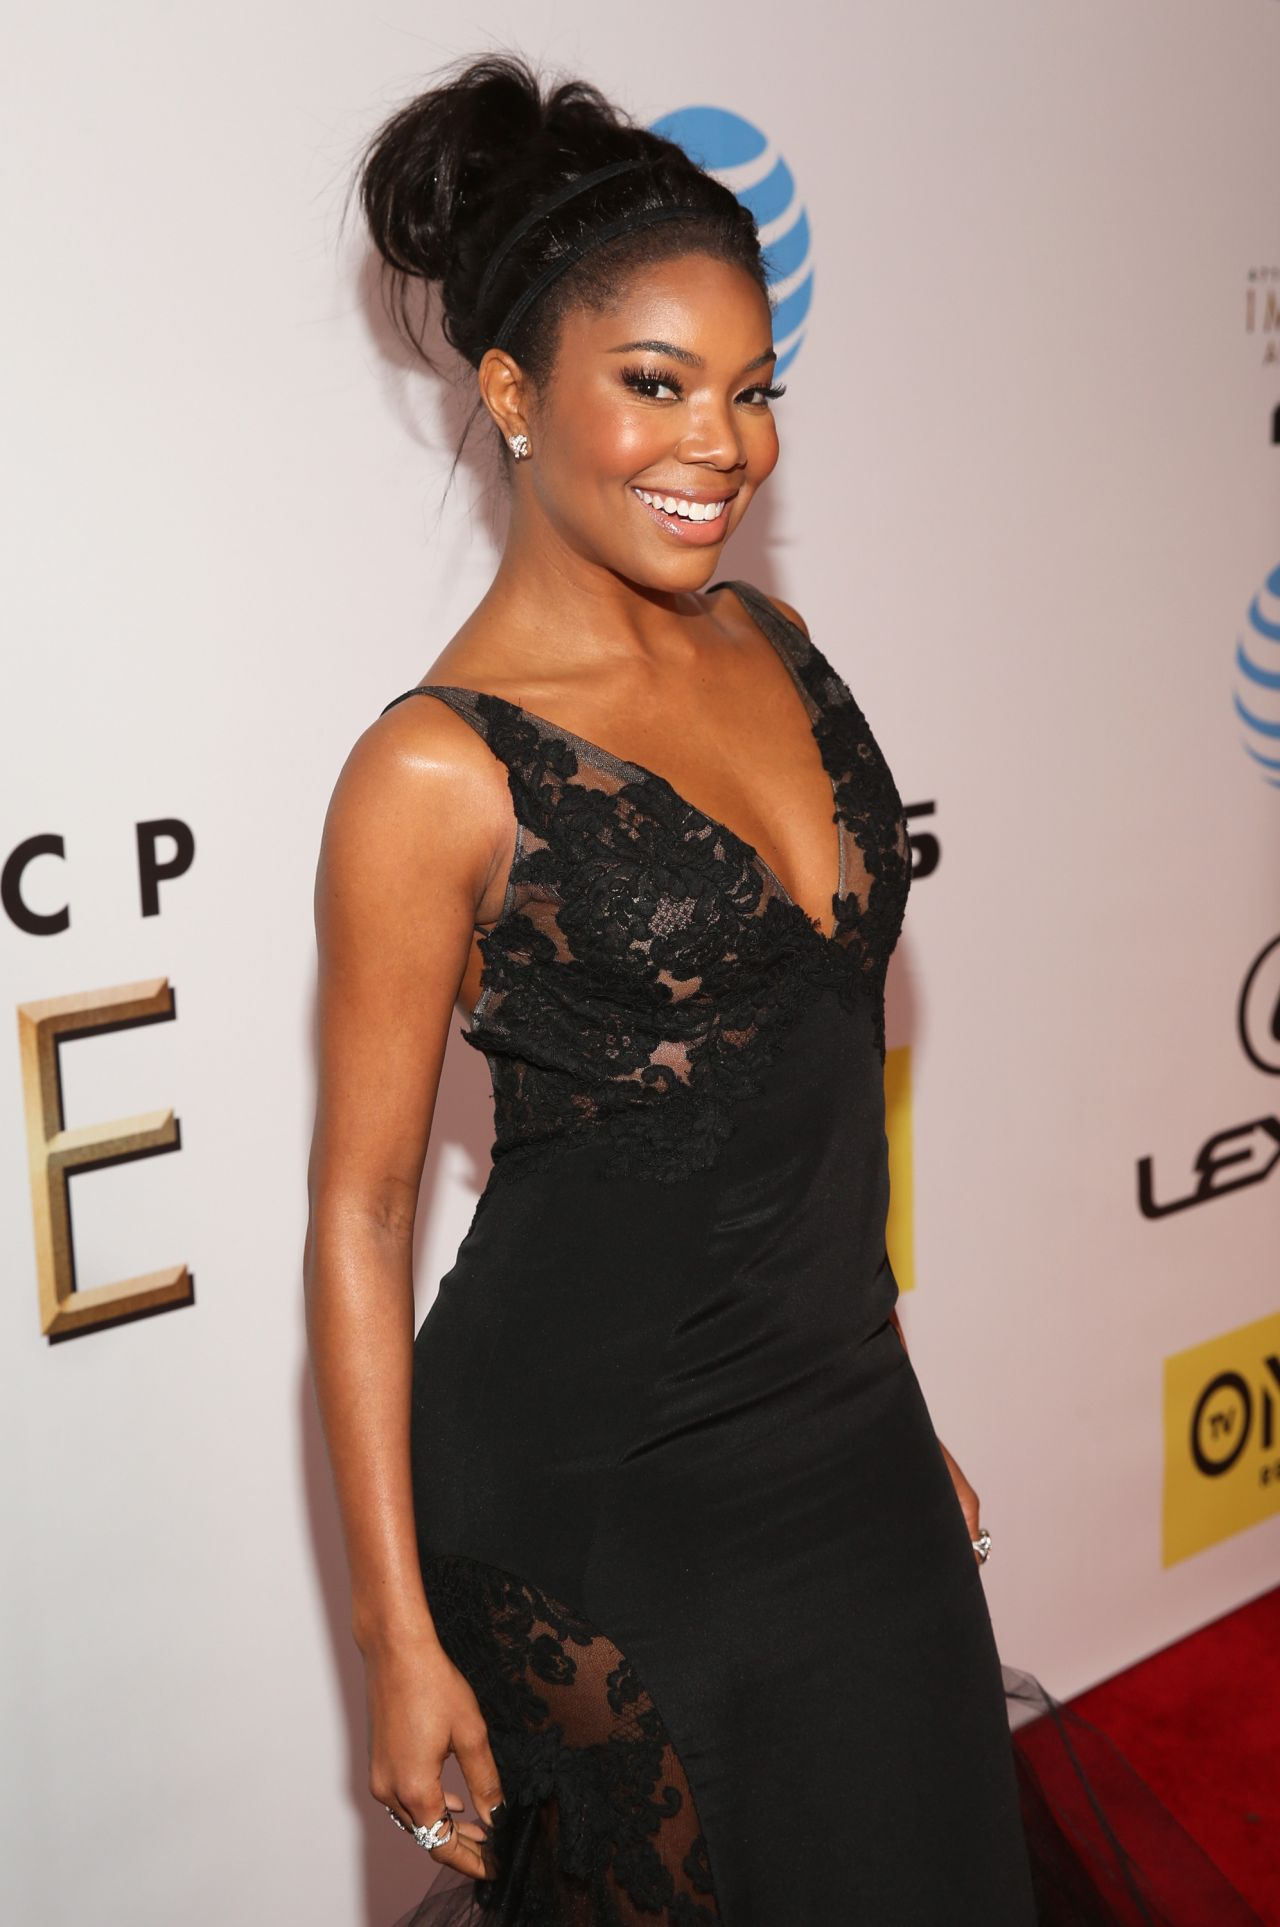 gabrielle-union-naacp-image-awards-2016-presented-by-tv-one-in-pasadena-ca-8